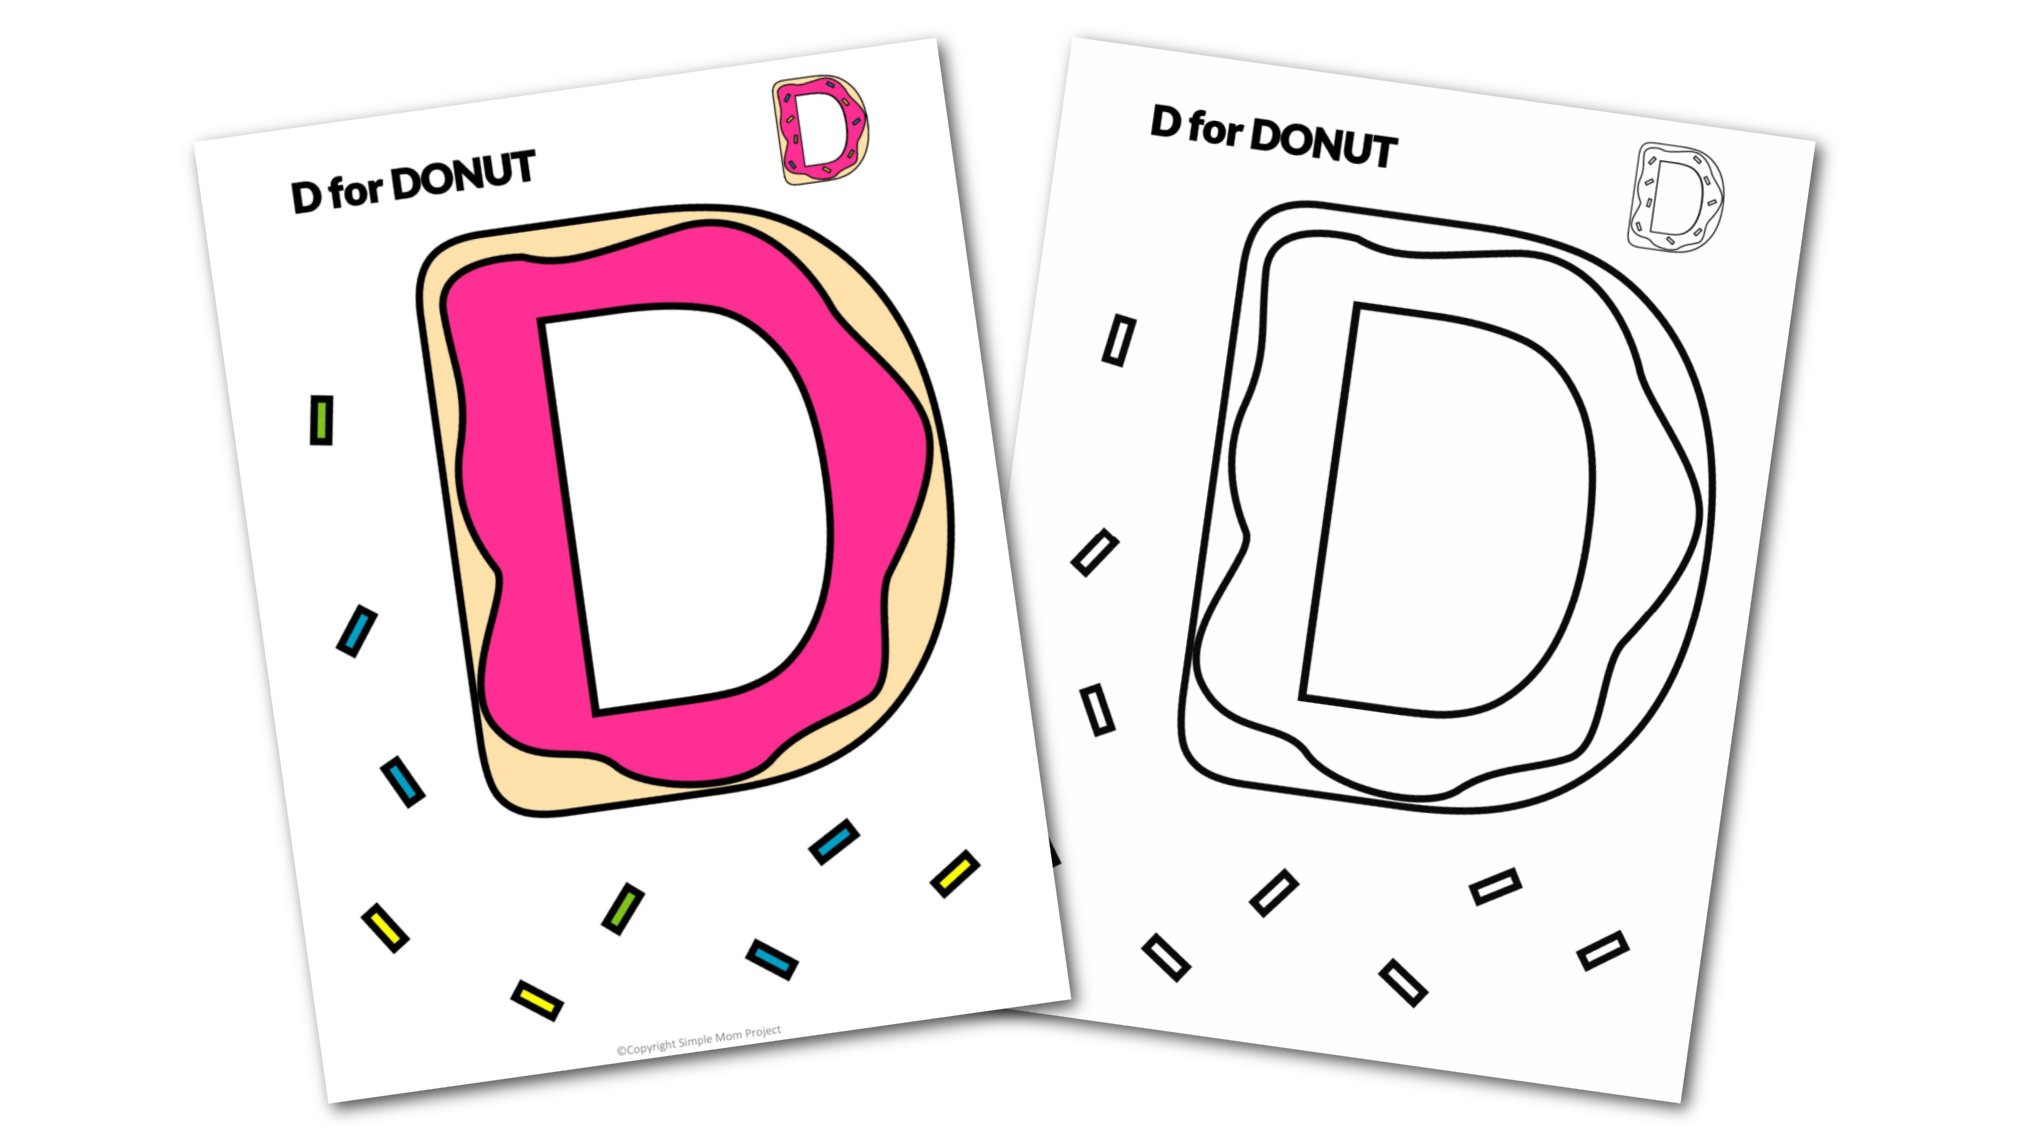 D is for Donut Printable Craft Donut Letter D Craft for Kids, preschoolers, toddlers and kindergartners